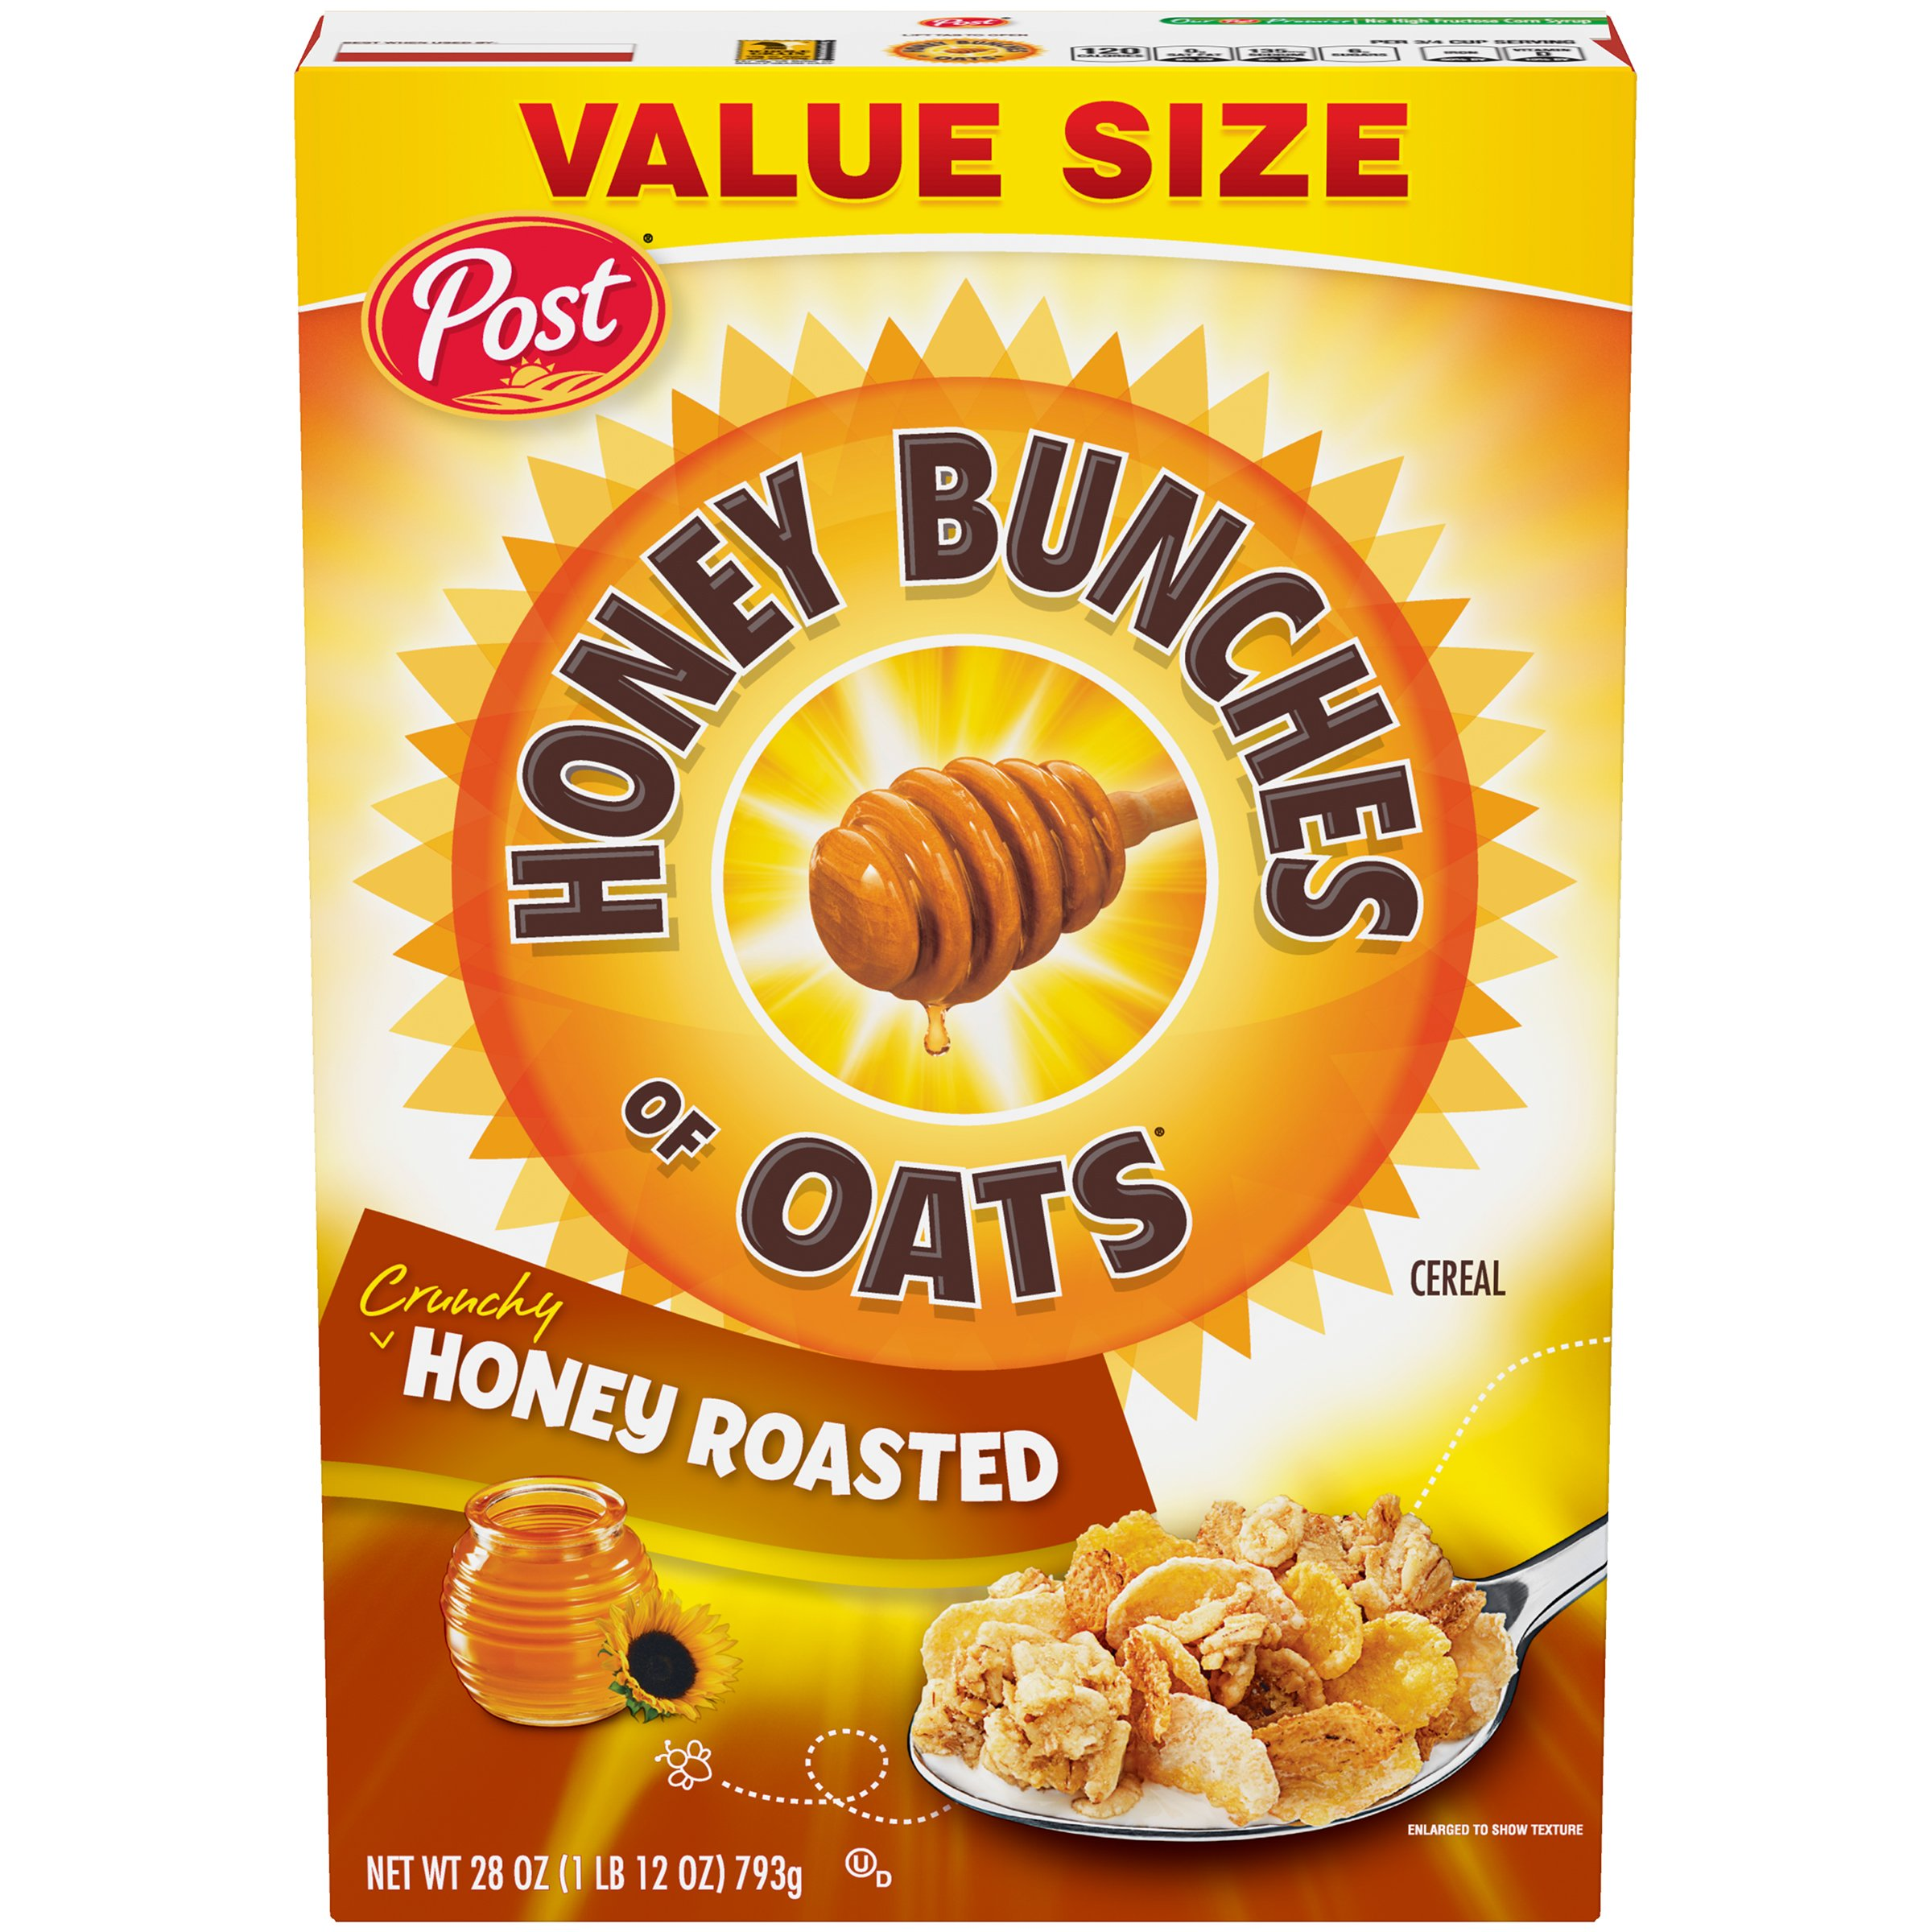 Honey Bunches of Oats Honey Roasted, Heart Healthy, Low Fat, made with Whole Grain Cereal, 28 Ounce Box